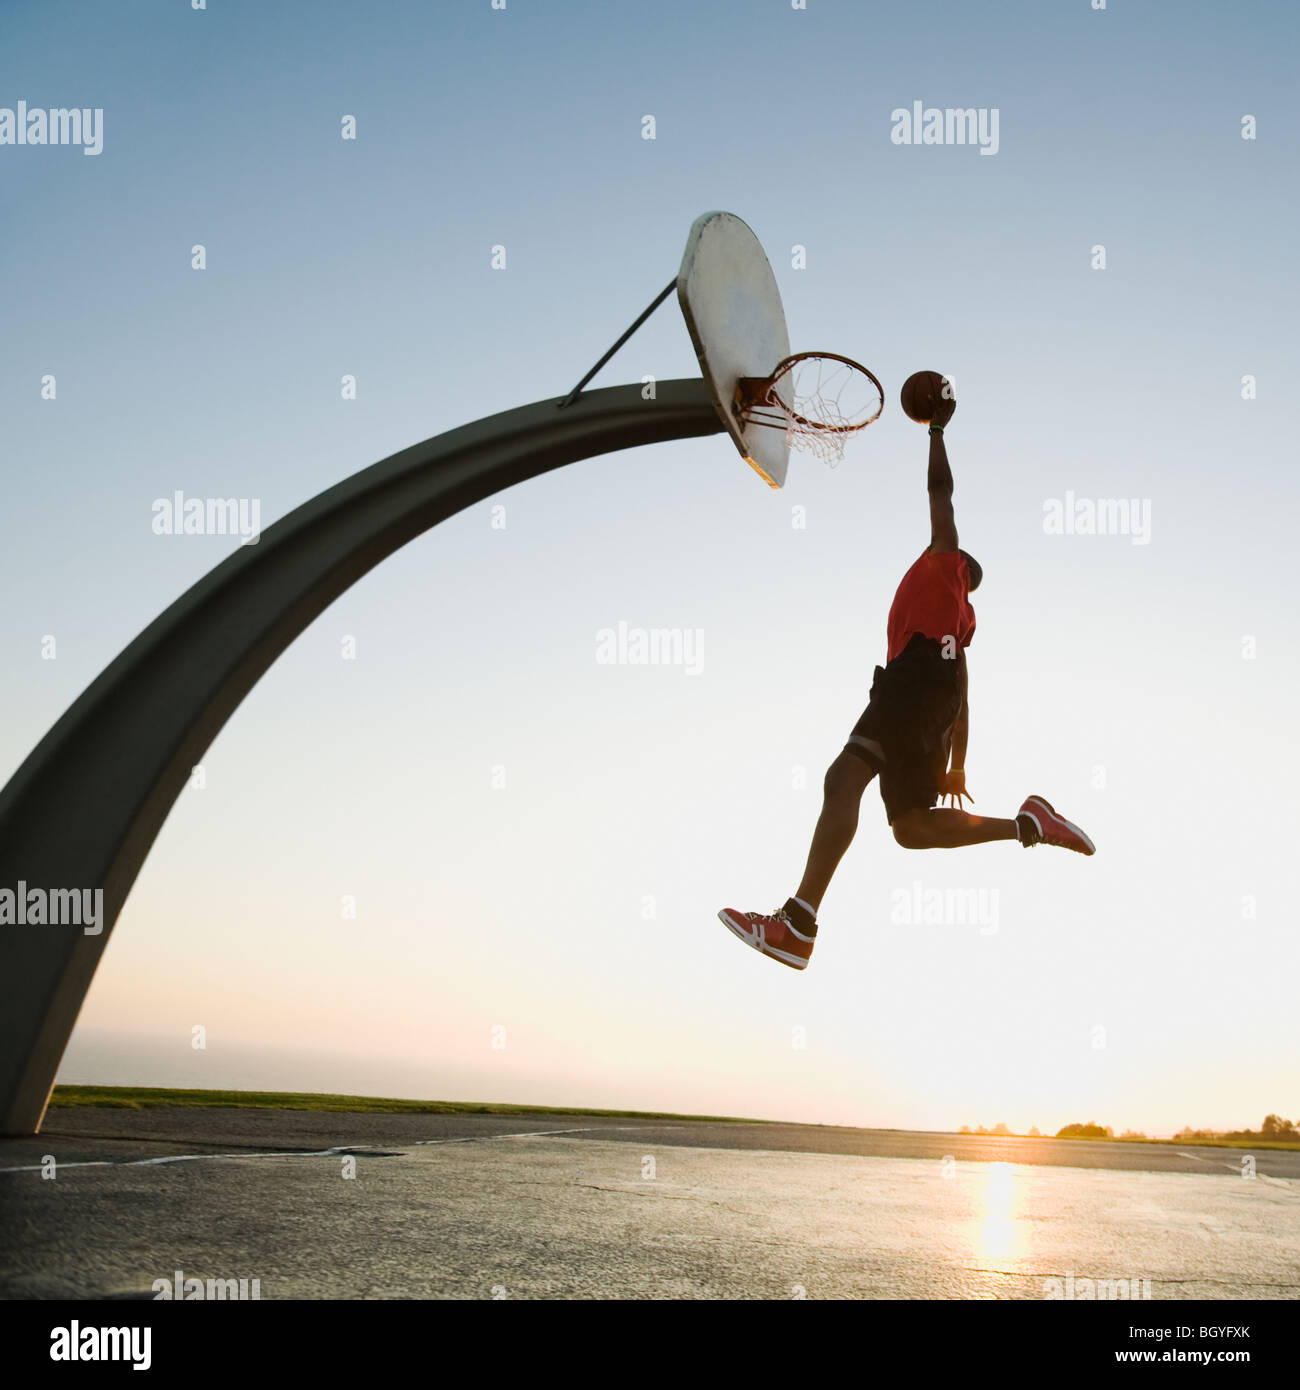 Joueur de basket-ball Photo Stock